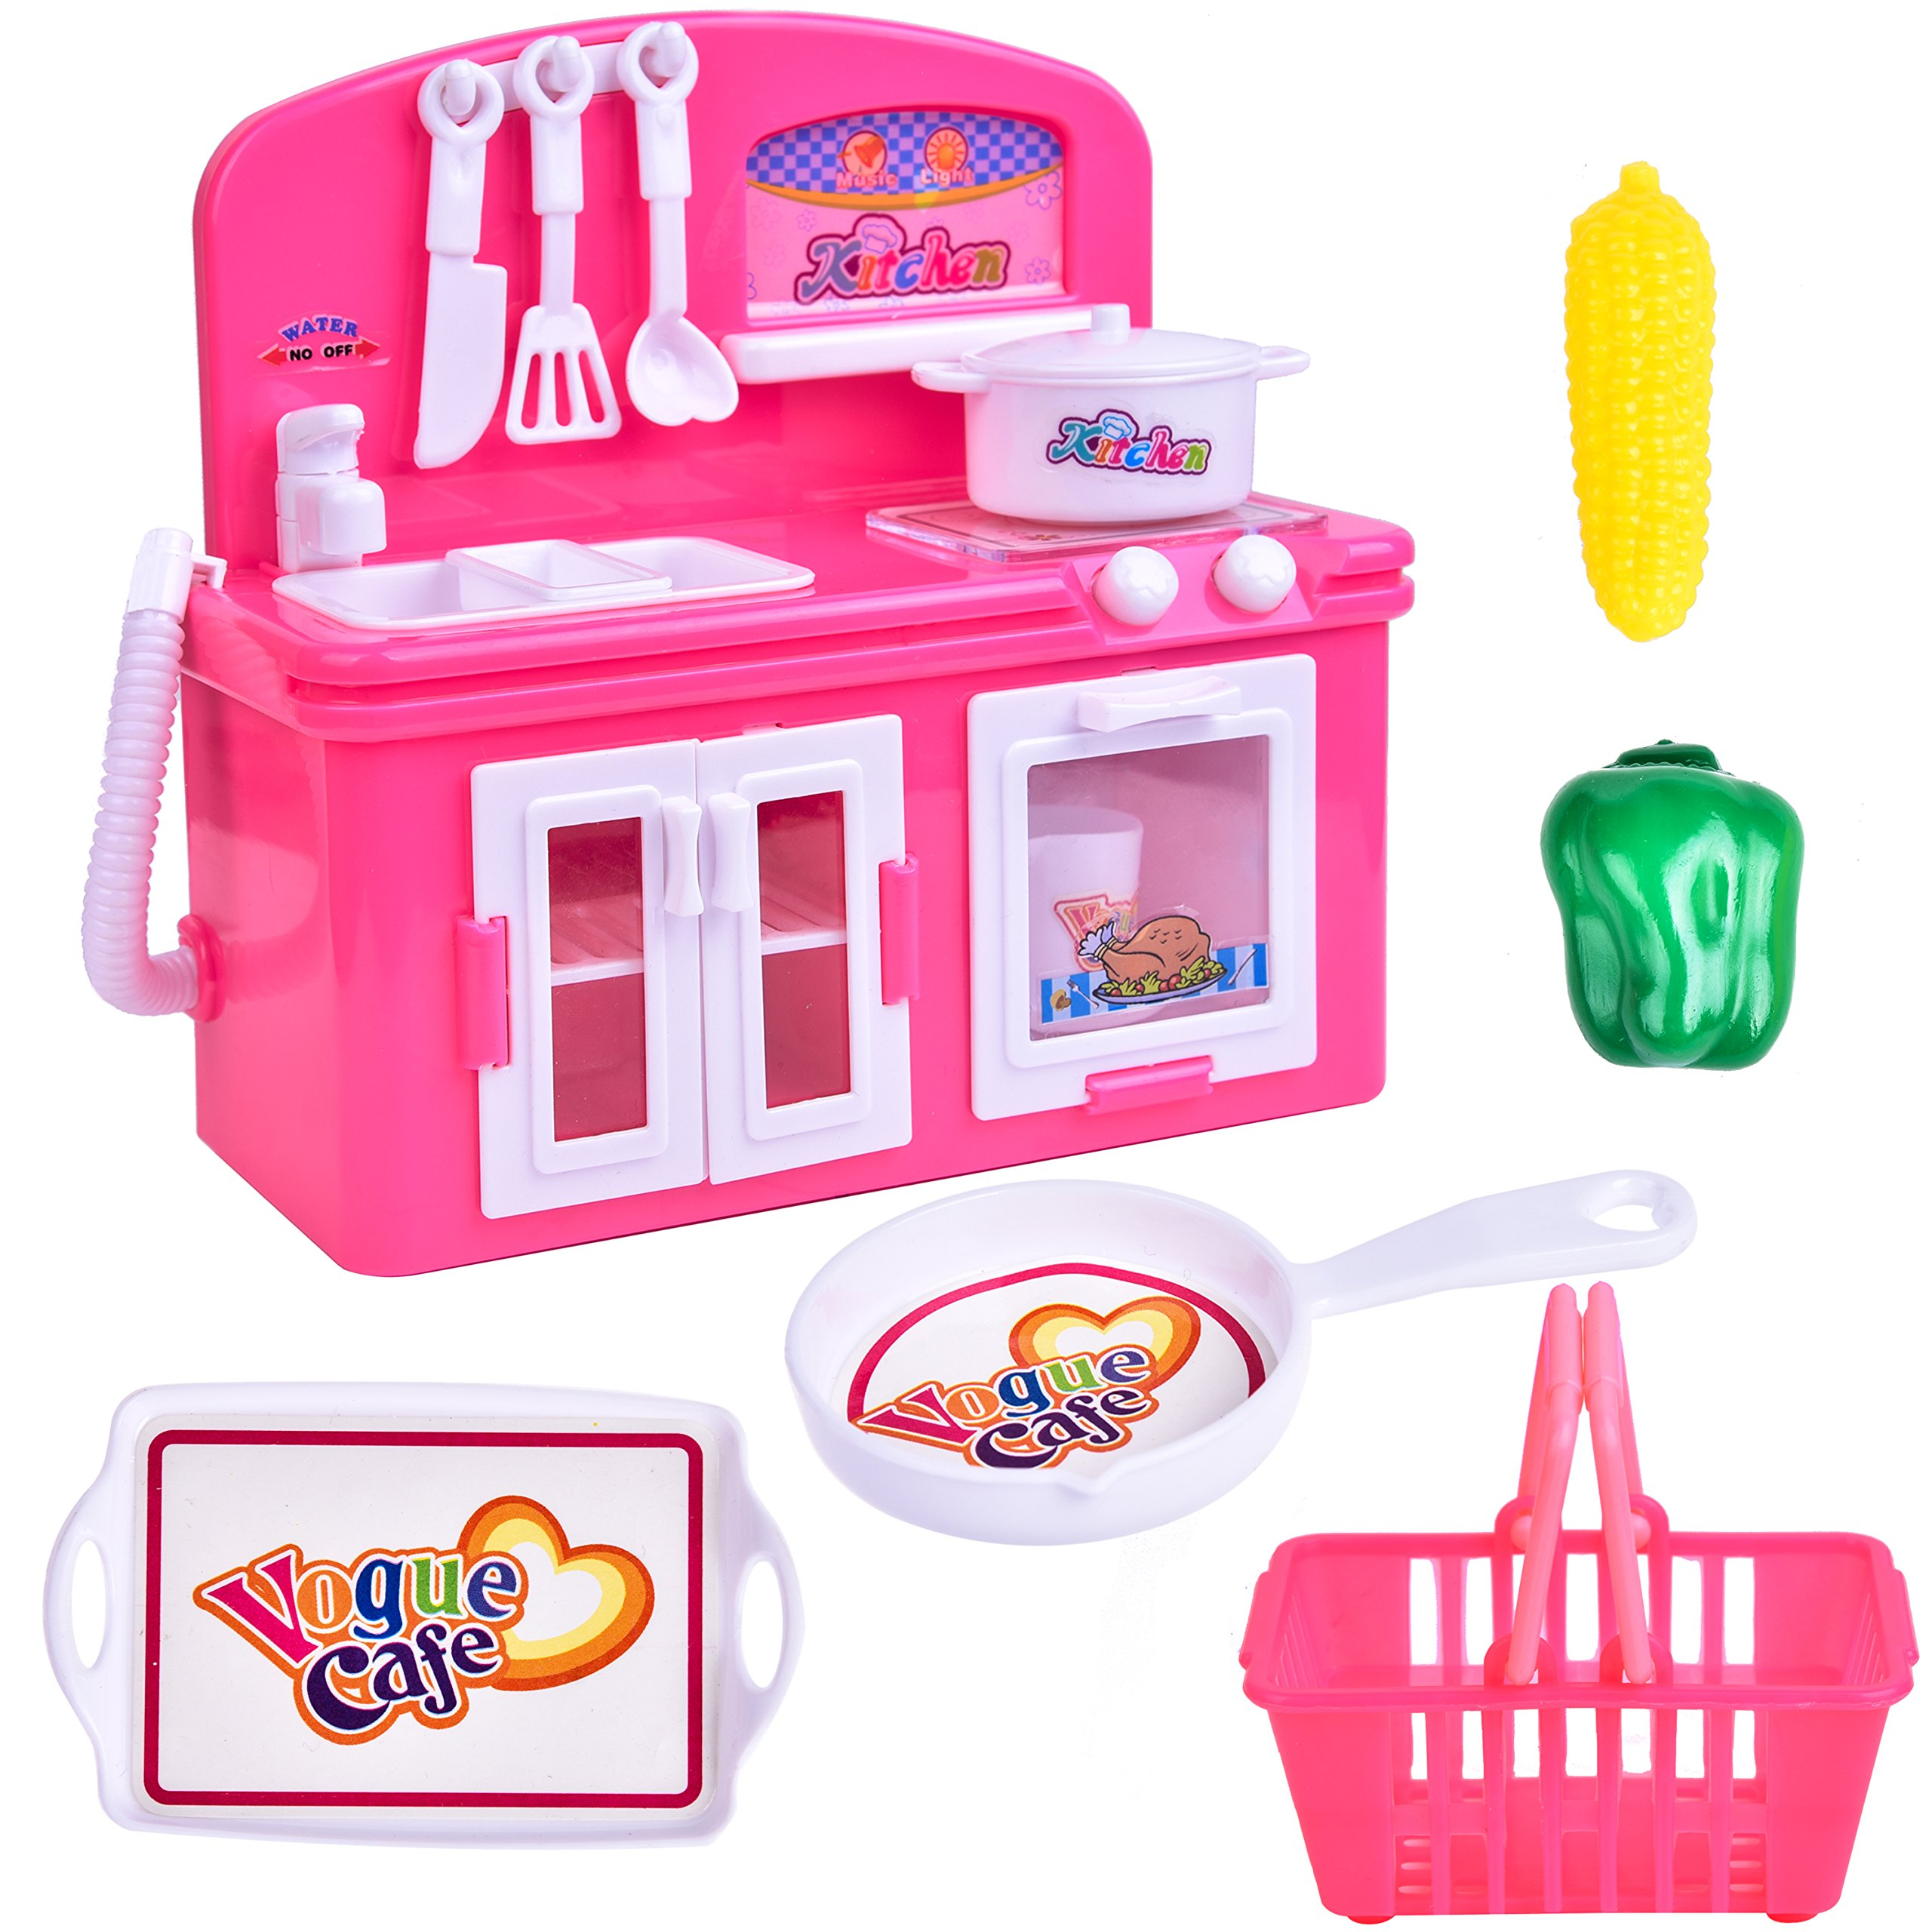 FUN LITTLE TOYS Toy Kitchen Appliances for Girls, Stove Burner with Oven, Food Playset, Play Kitchen Accessories for Toddlers and Kids, 3 + Year Old Girl Gifts by FUN LITTLE TOYS